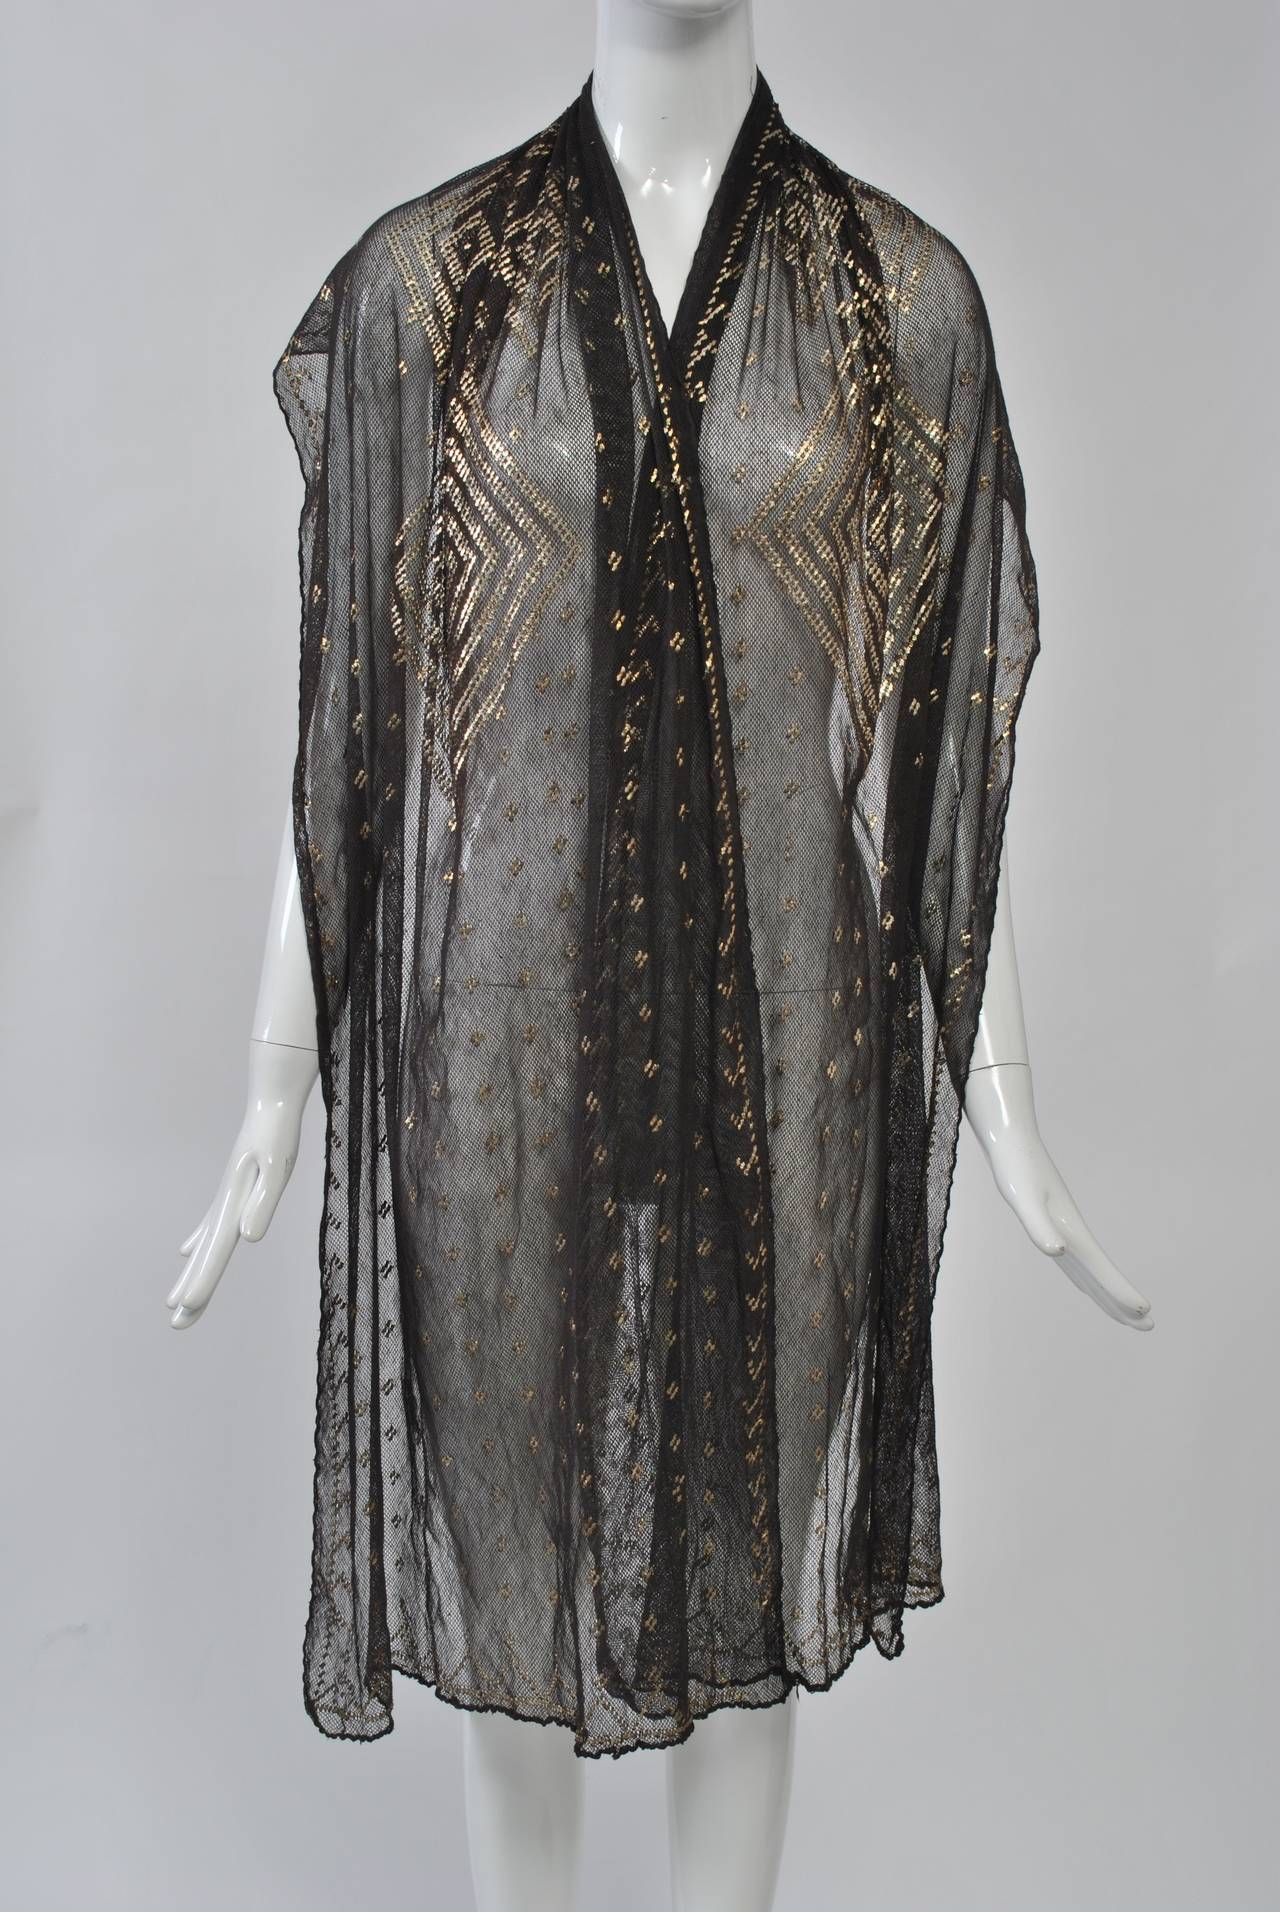 Black assuit shawl with silver metal embroidery in a geometric design. These were made in Egypt and especially popular during the 1920s. Very good condition.